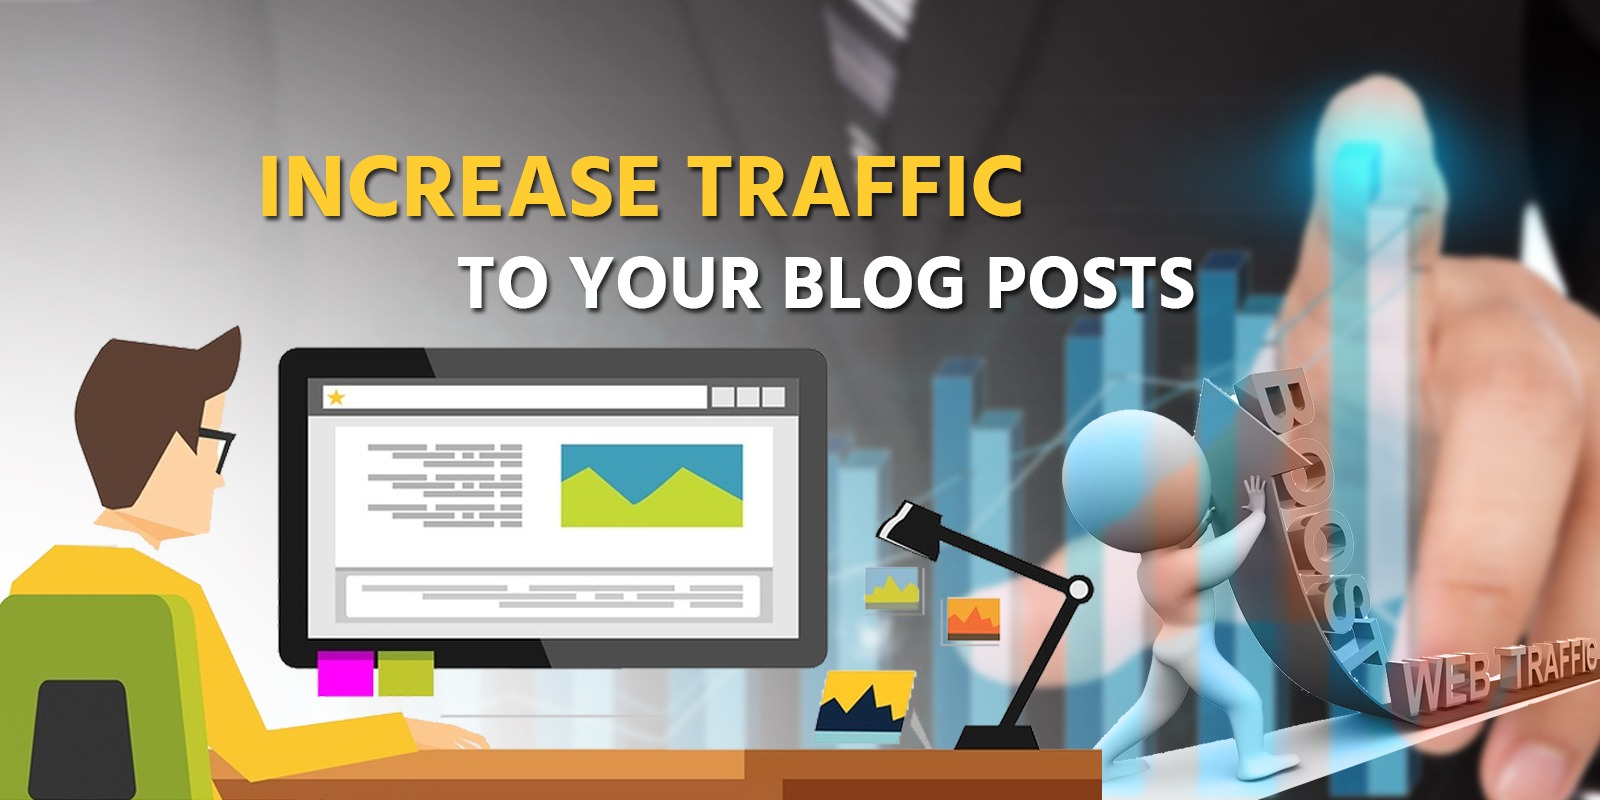 How to increase traffic to your blog posts quickly and easily